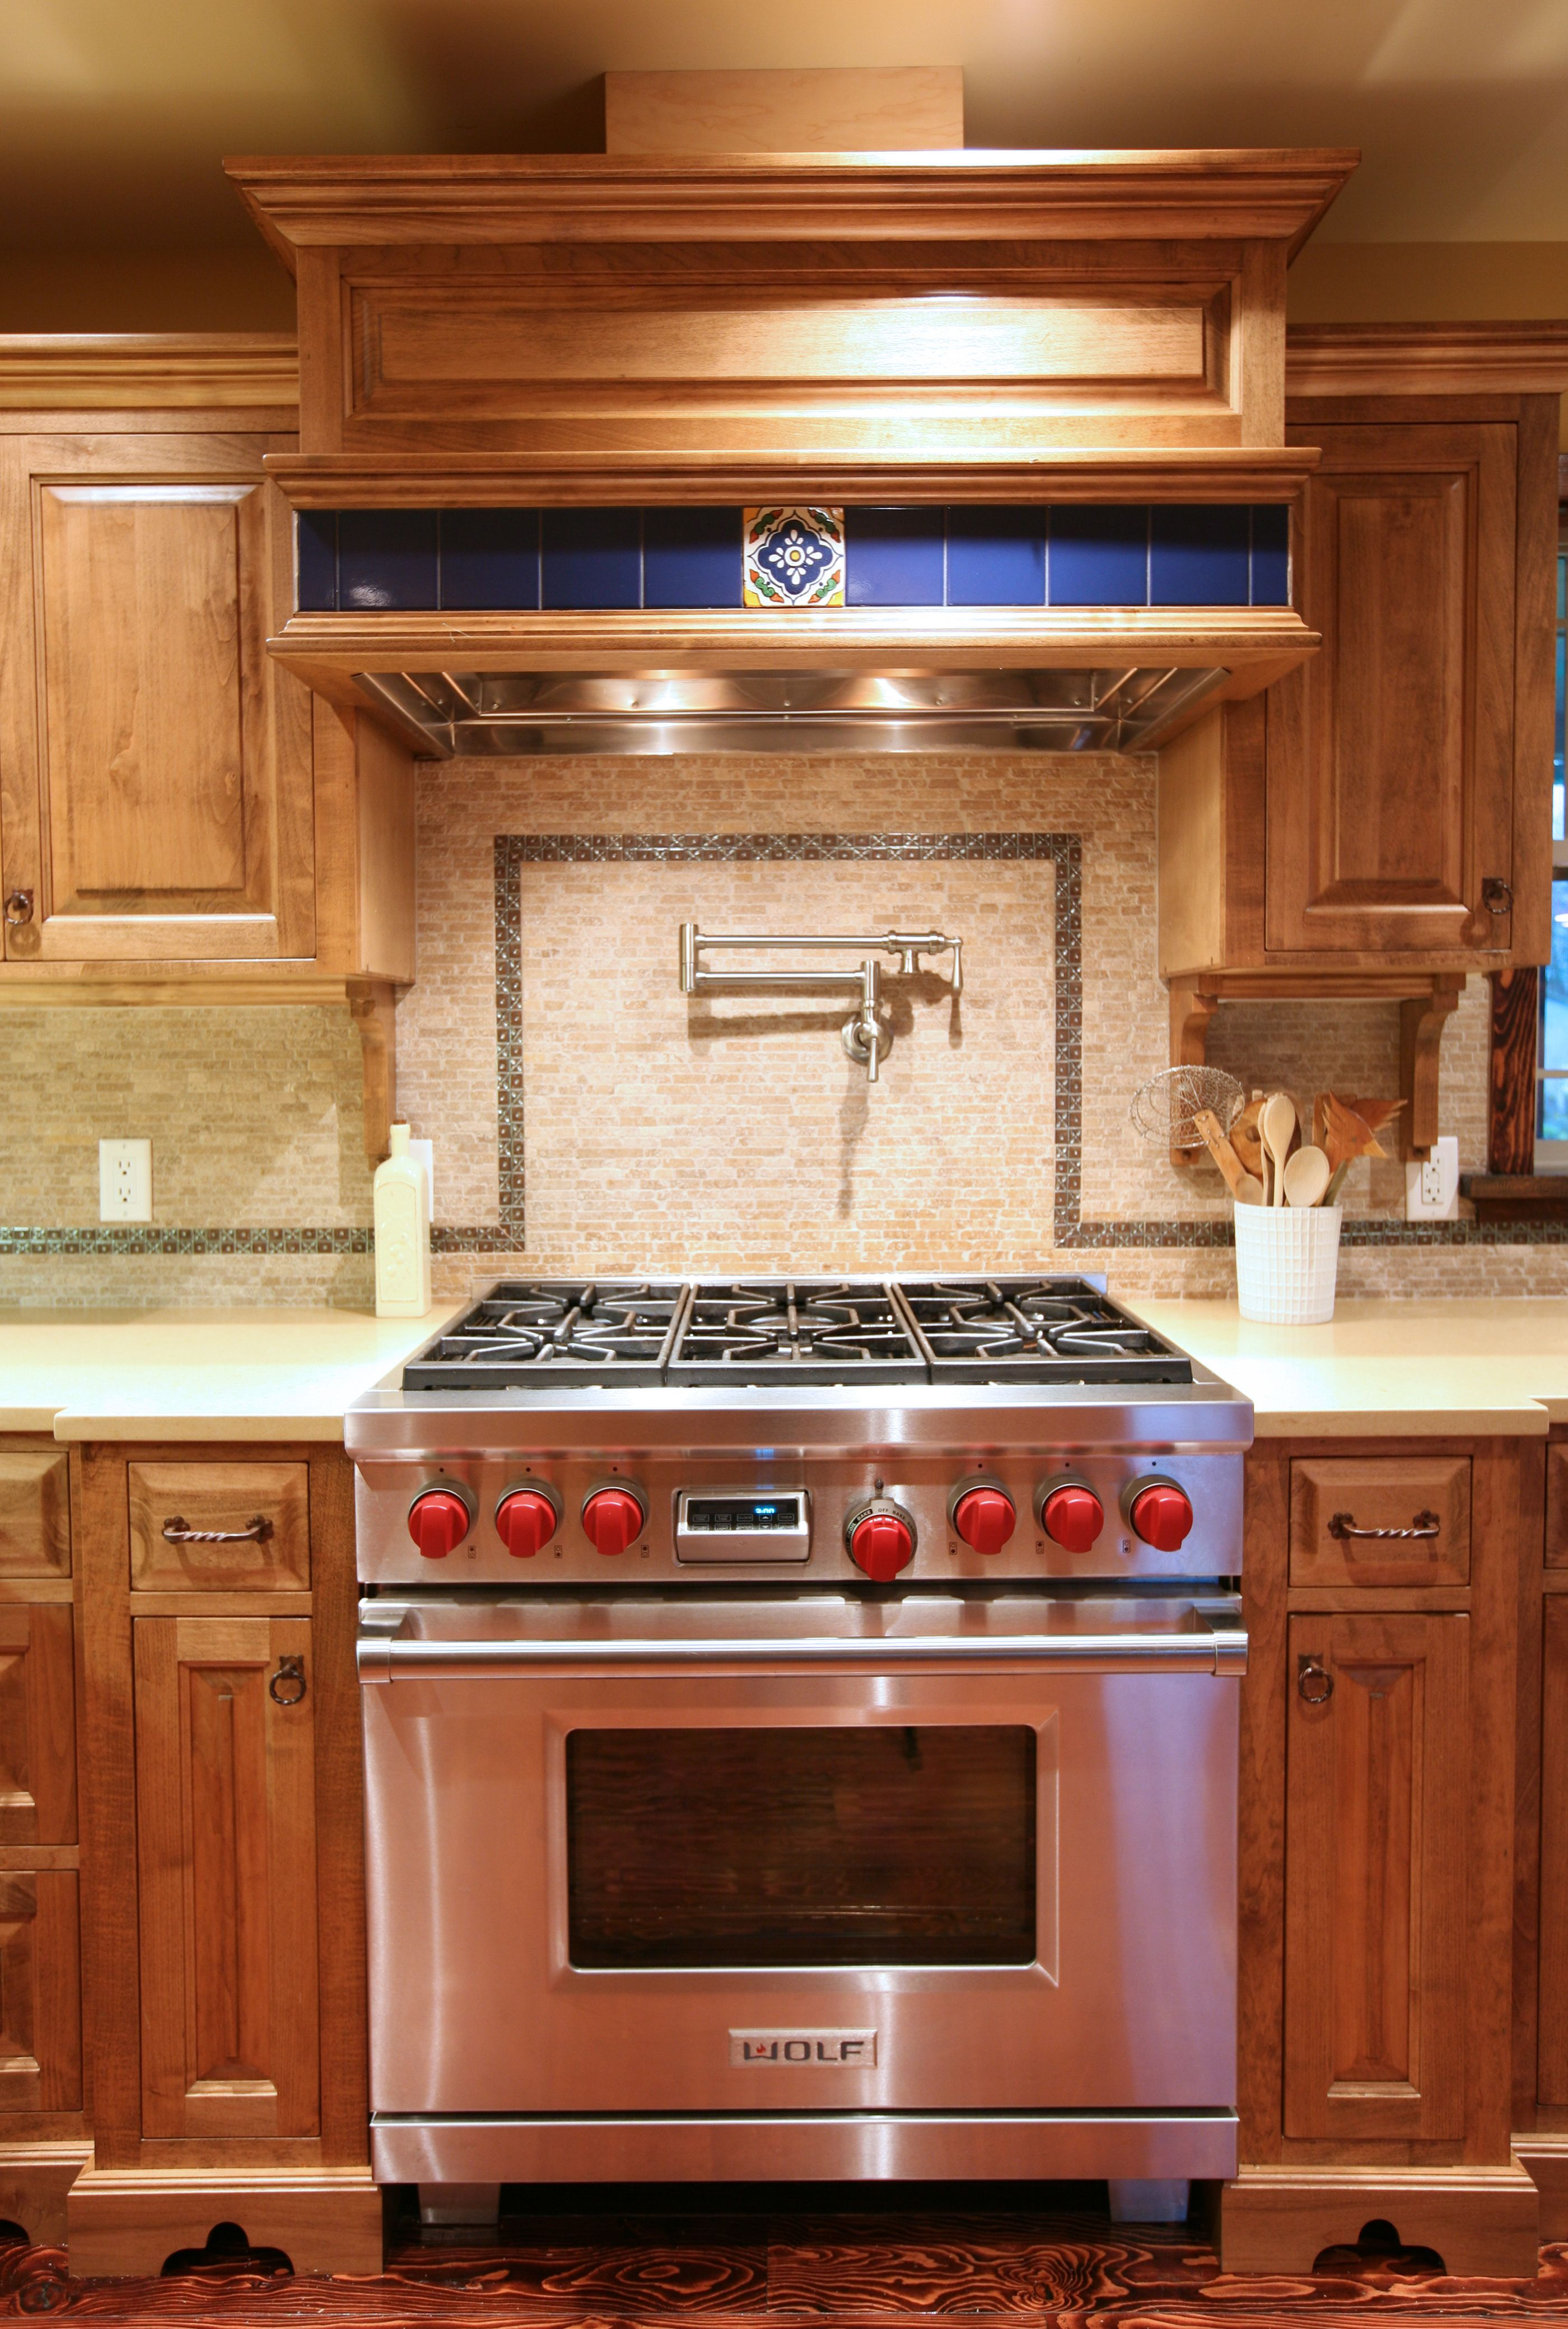 10 Kitchen And Home Decor Items Every 20 Something Needs: I Want This Wolf Gas Stove!!